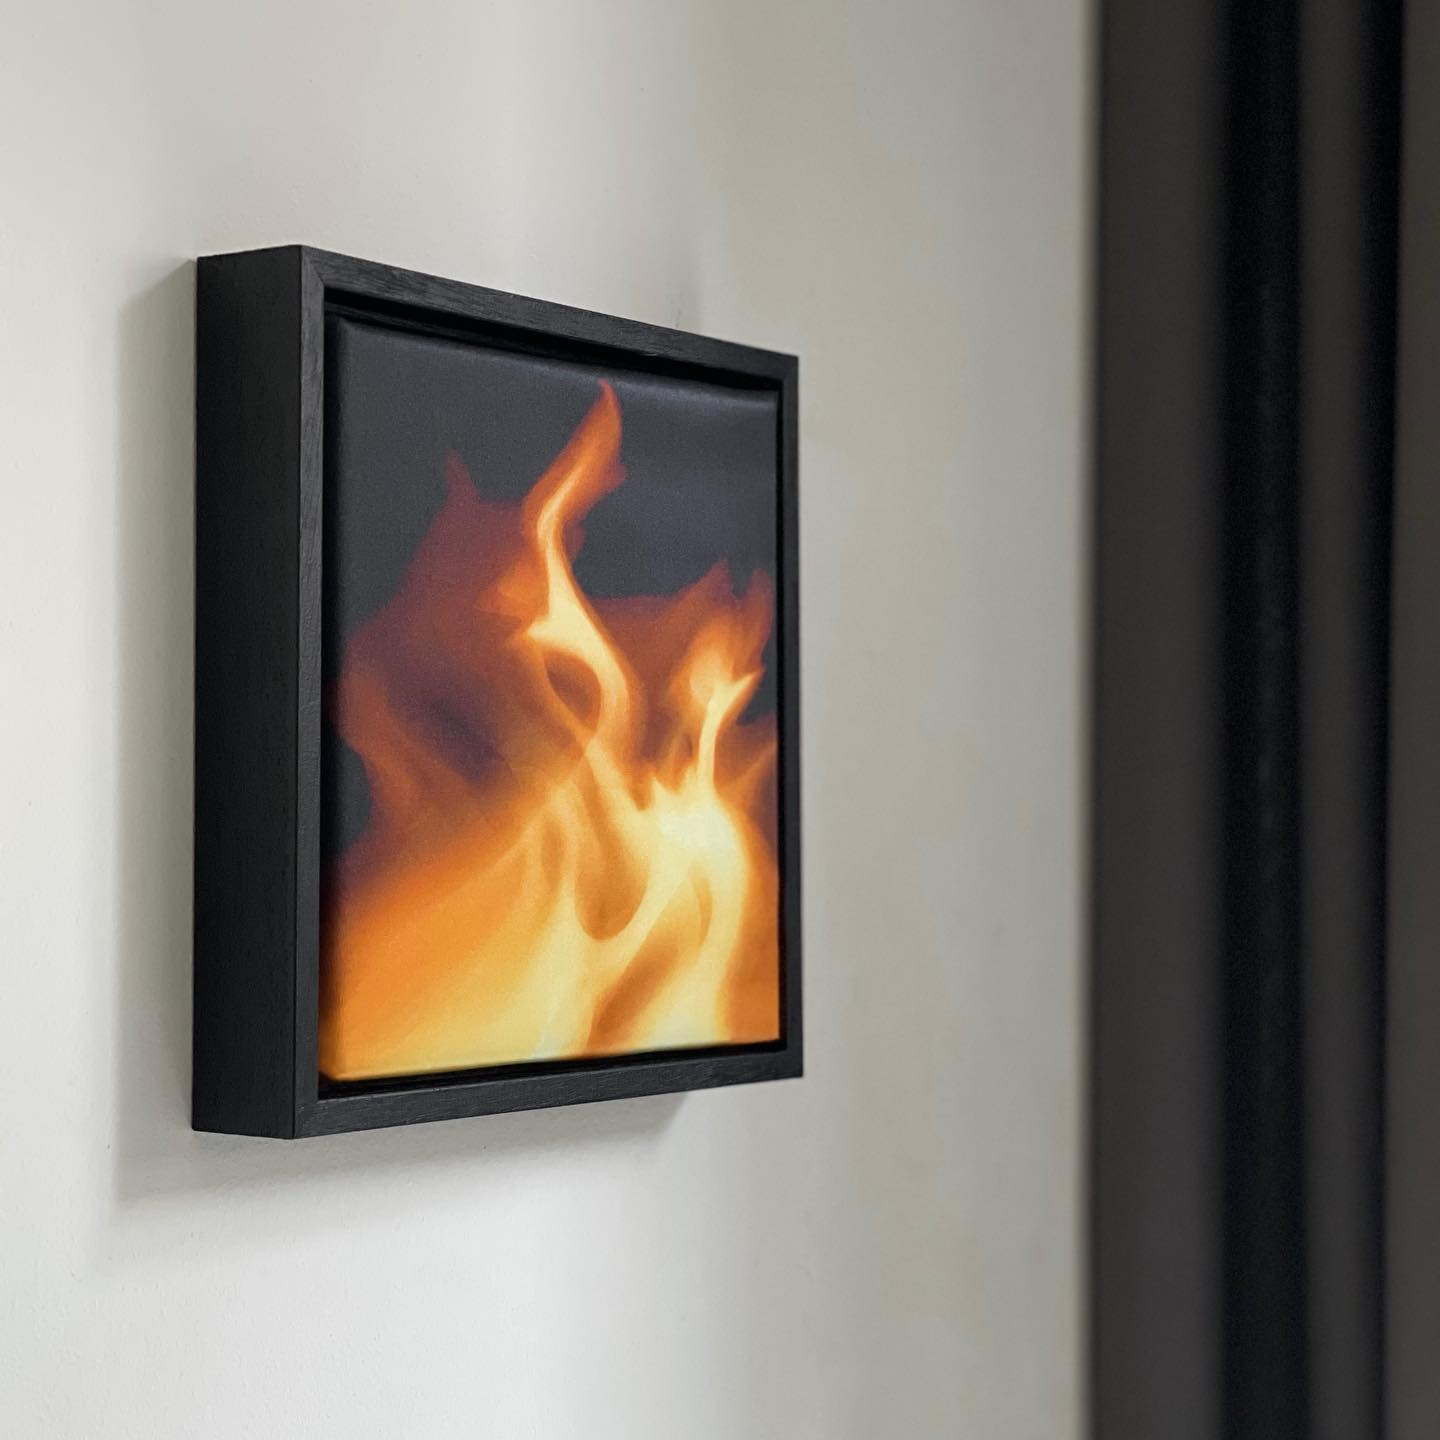 FRAMED FLAMES